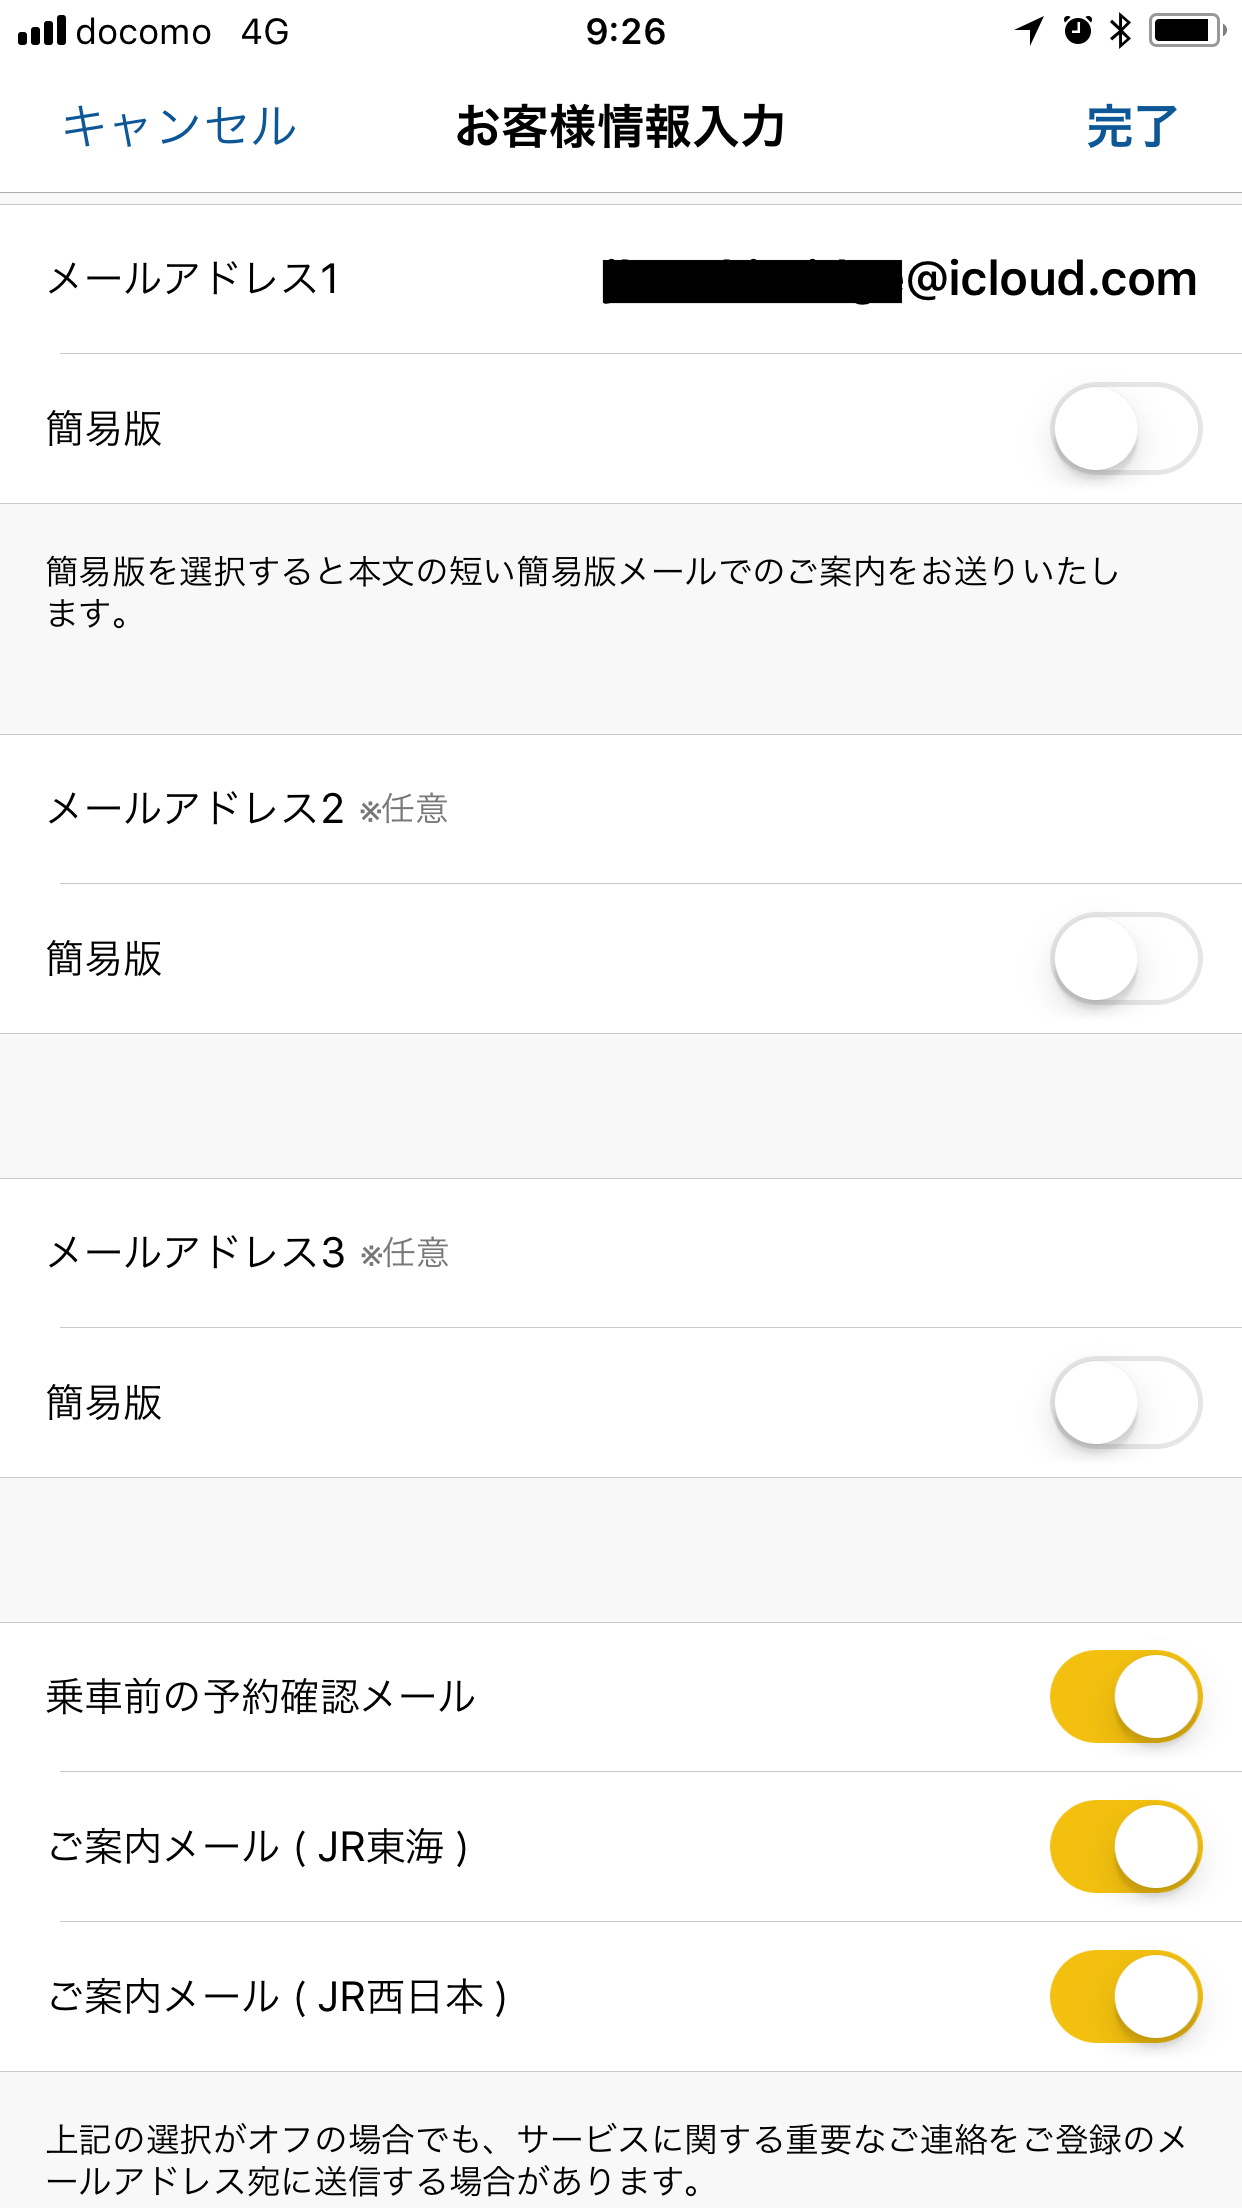 Scroll down for email address options